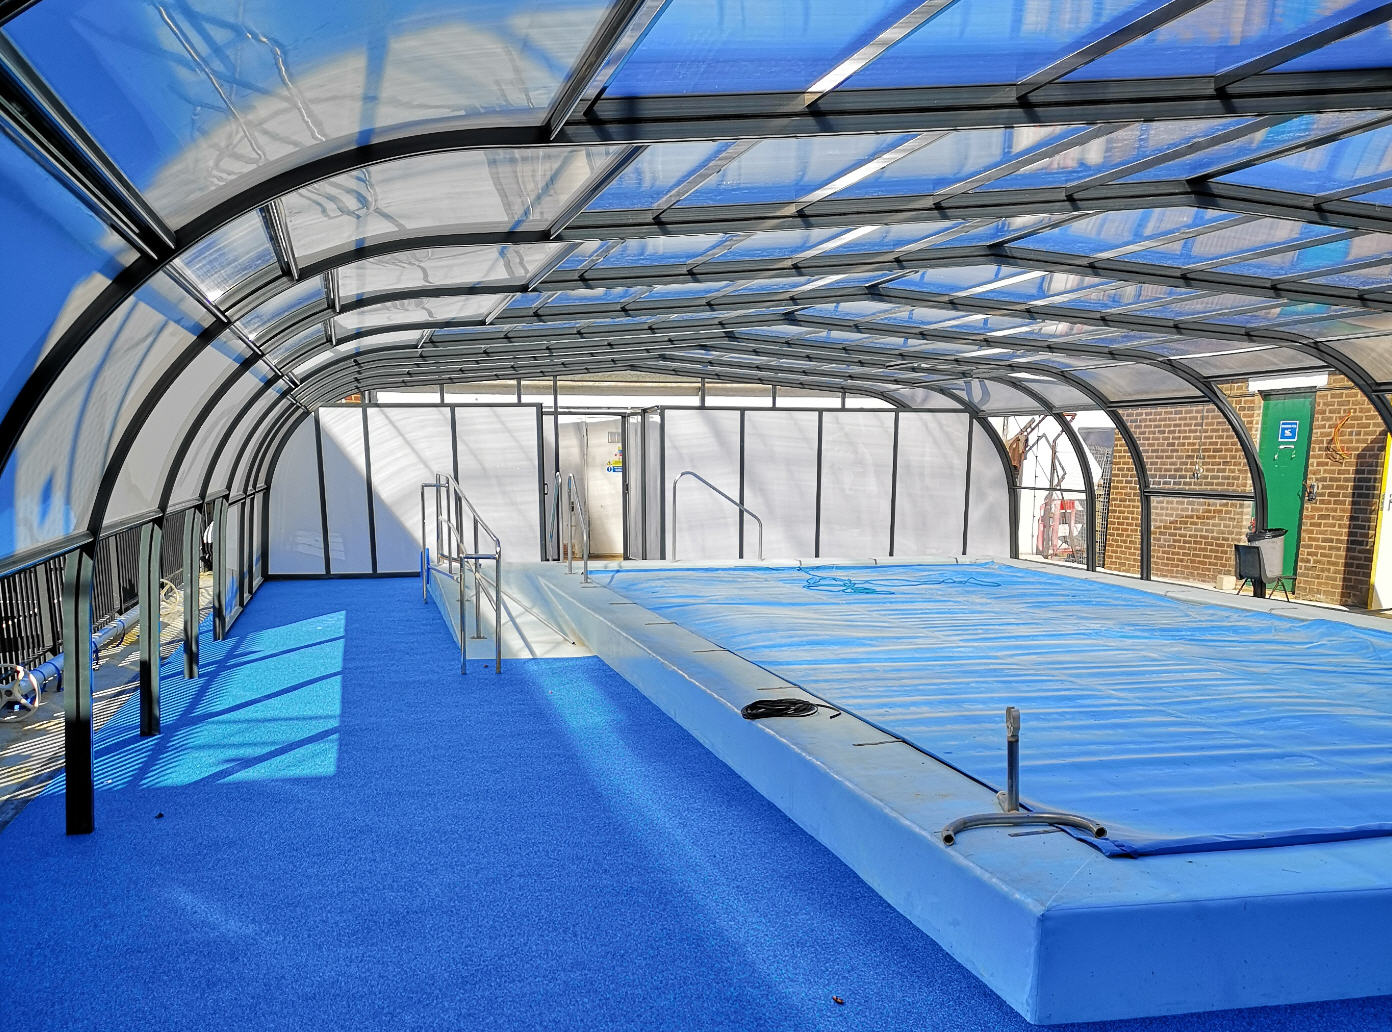 Royal-Park-School-Pool-Enclosure-with-pool-cover-by-Swimex-01